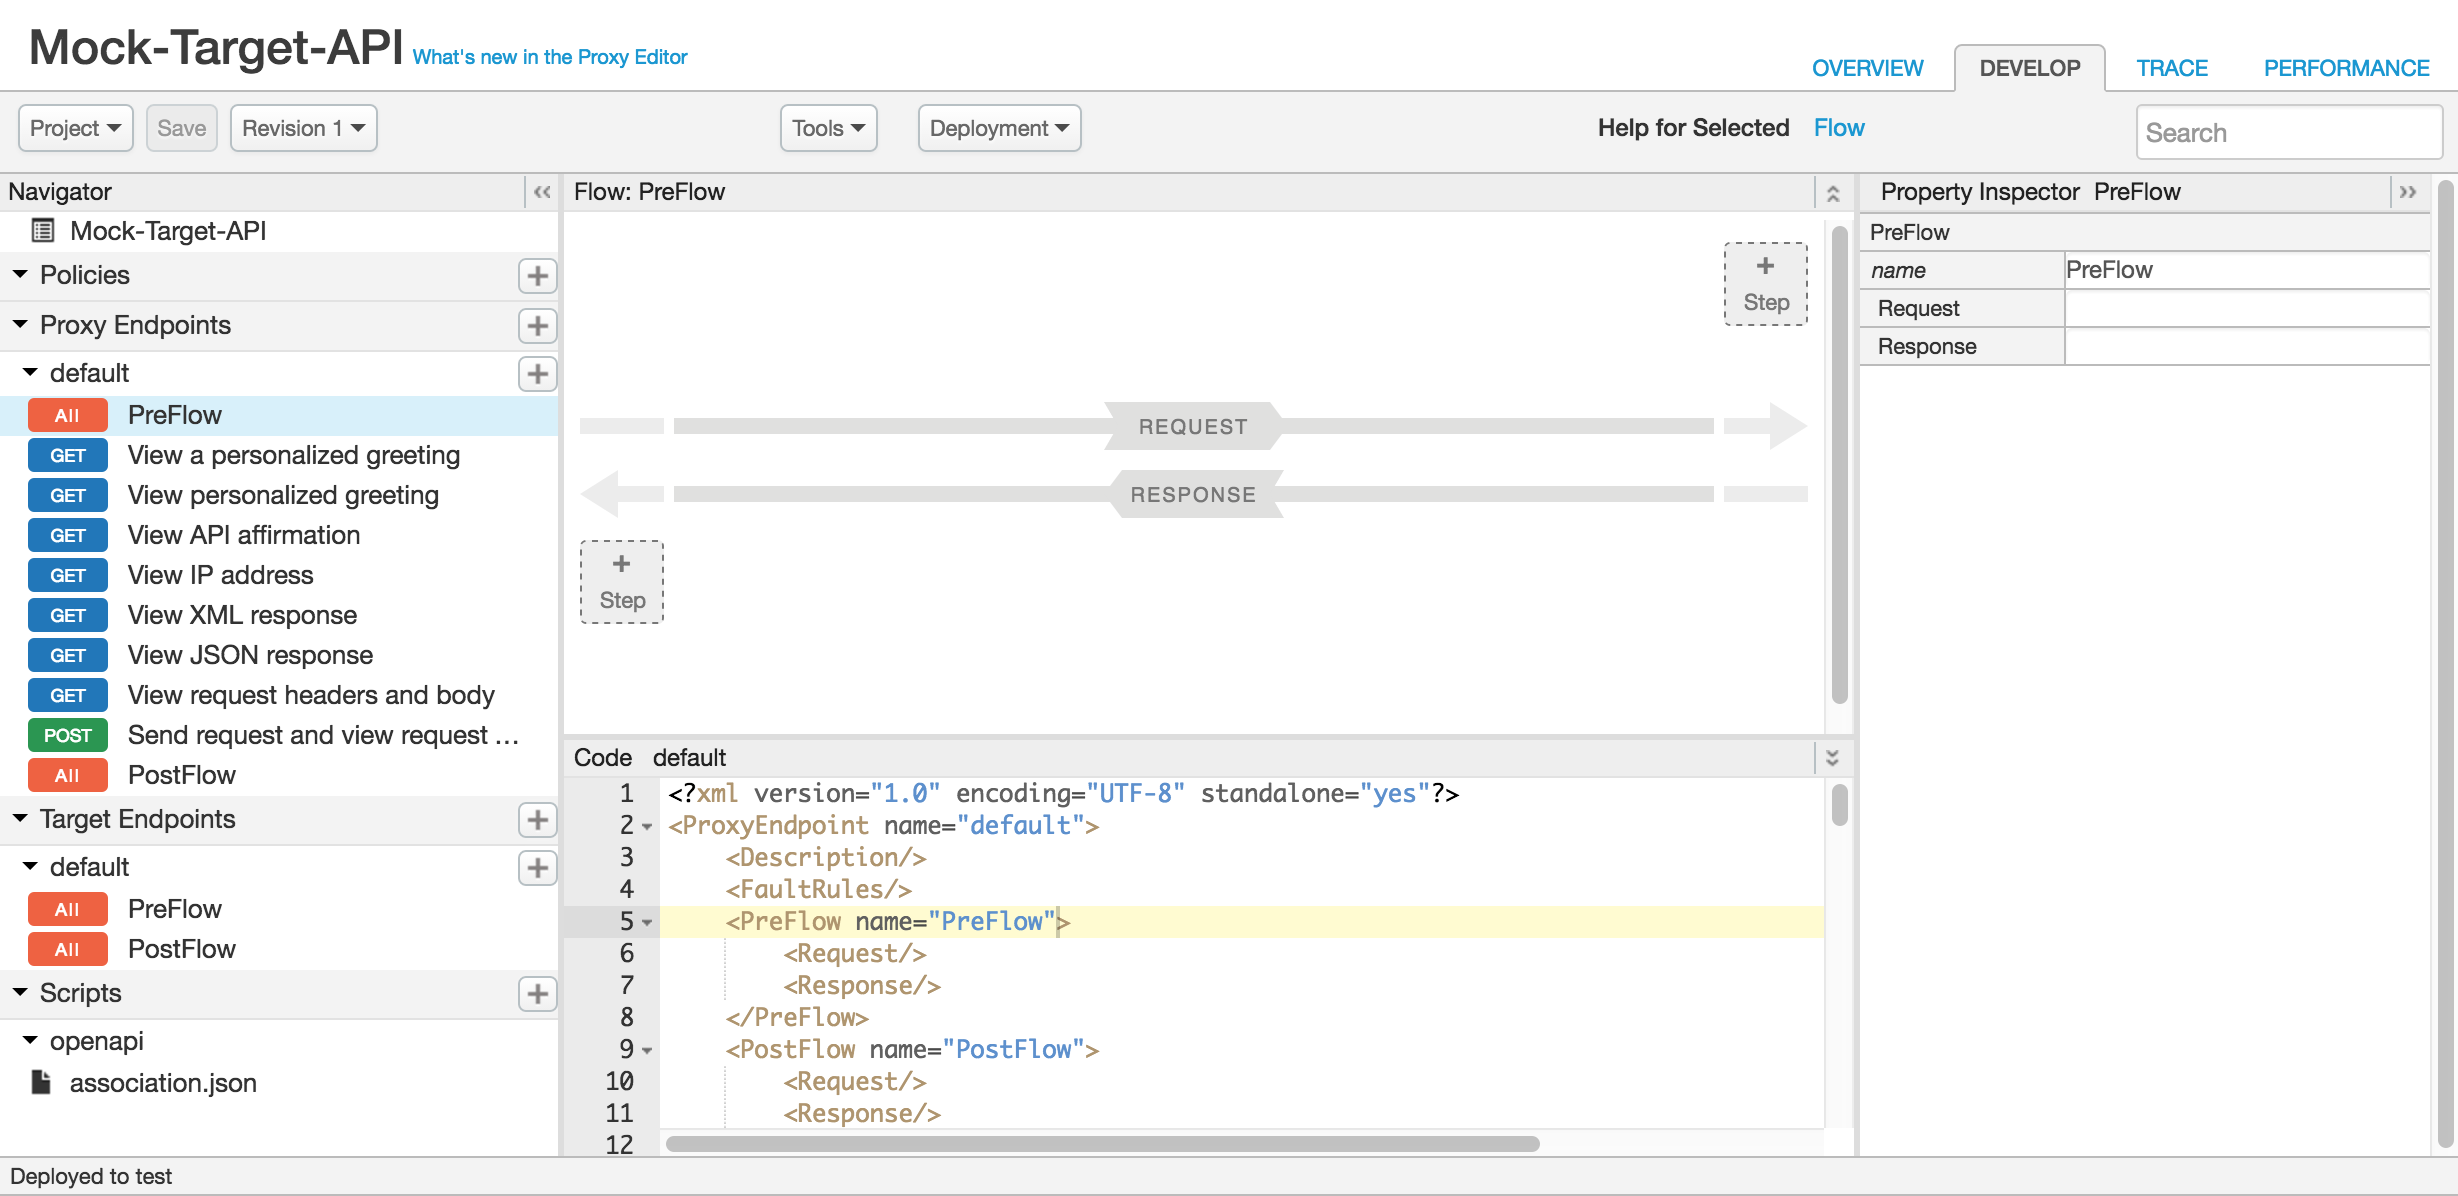 Develop view in the Edge UI for the Mock-Target-API proxy.